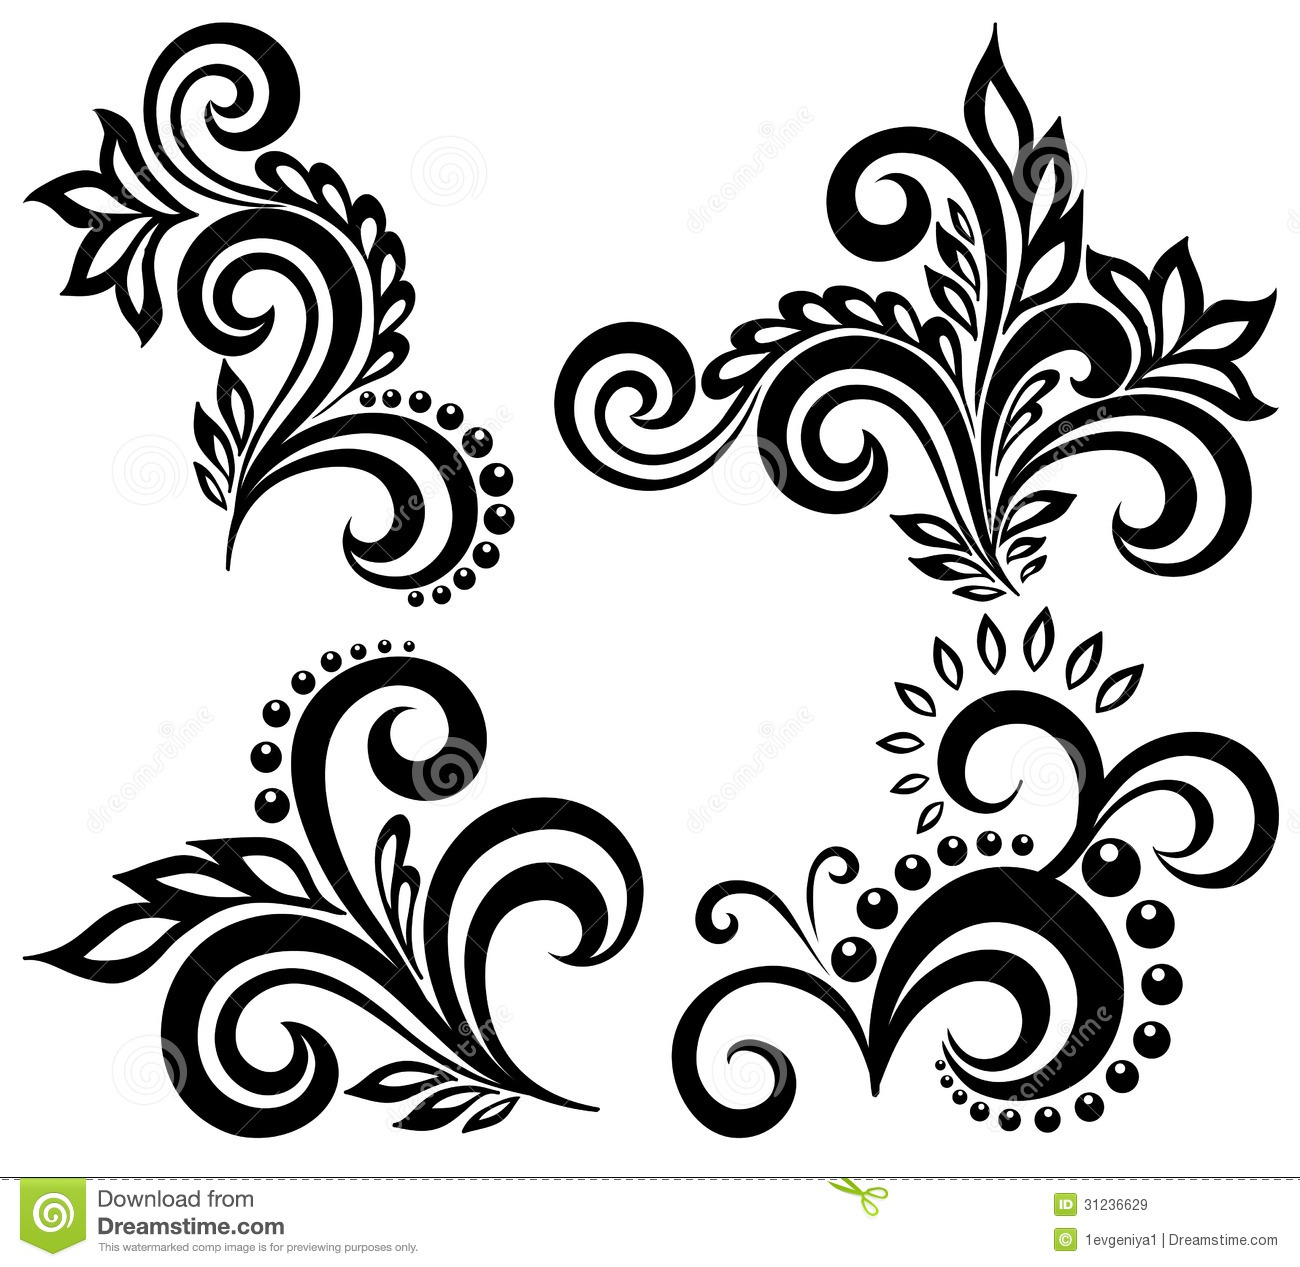 Six Black Flower Design Stock Images: Set Of Black And White Floral Elements Stock Vector